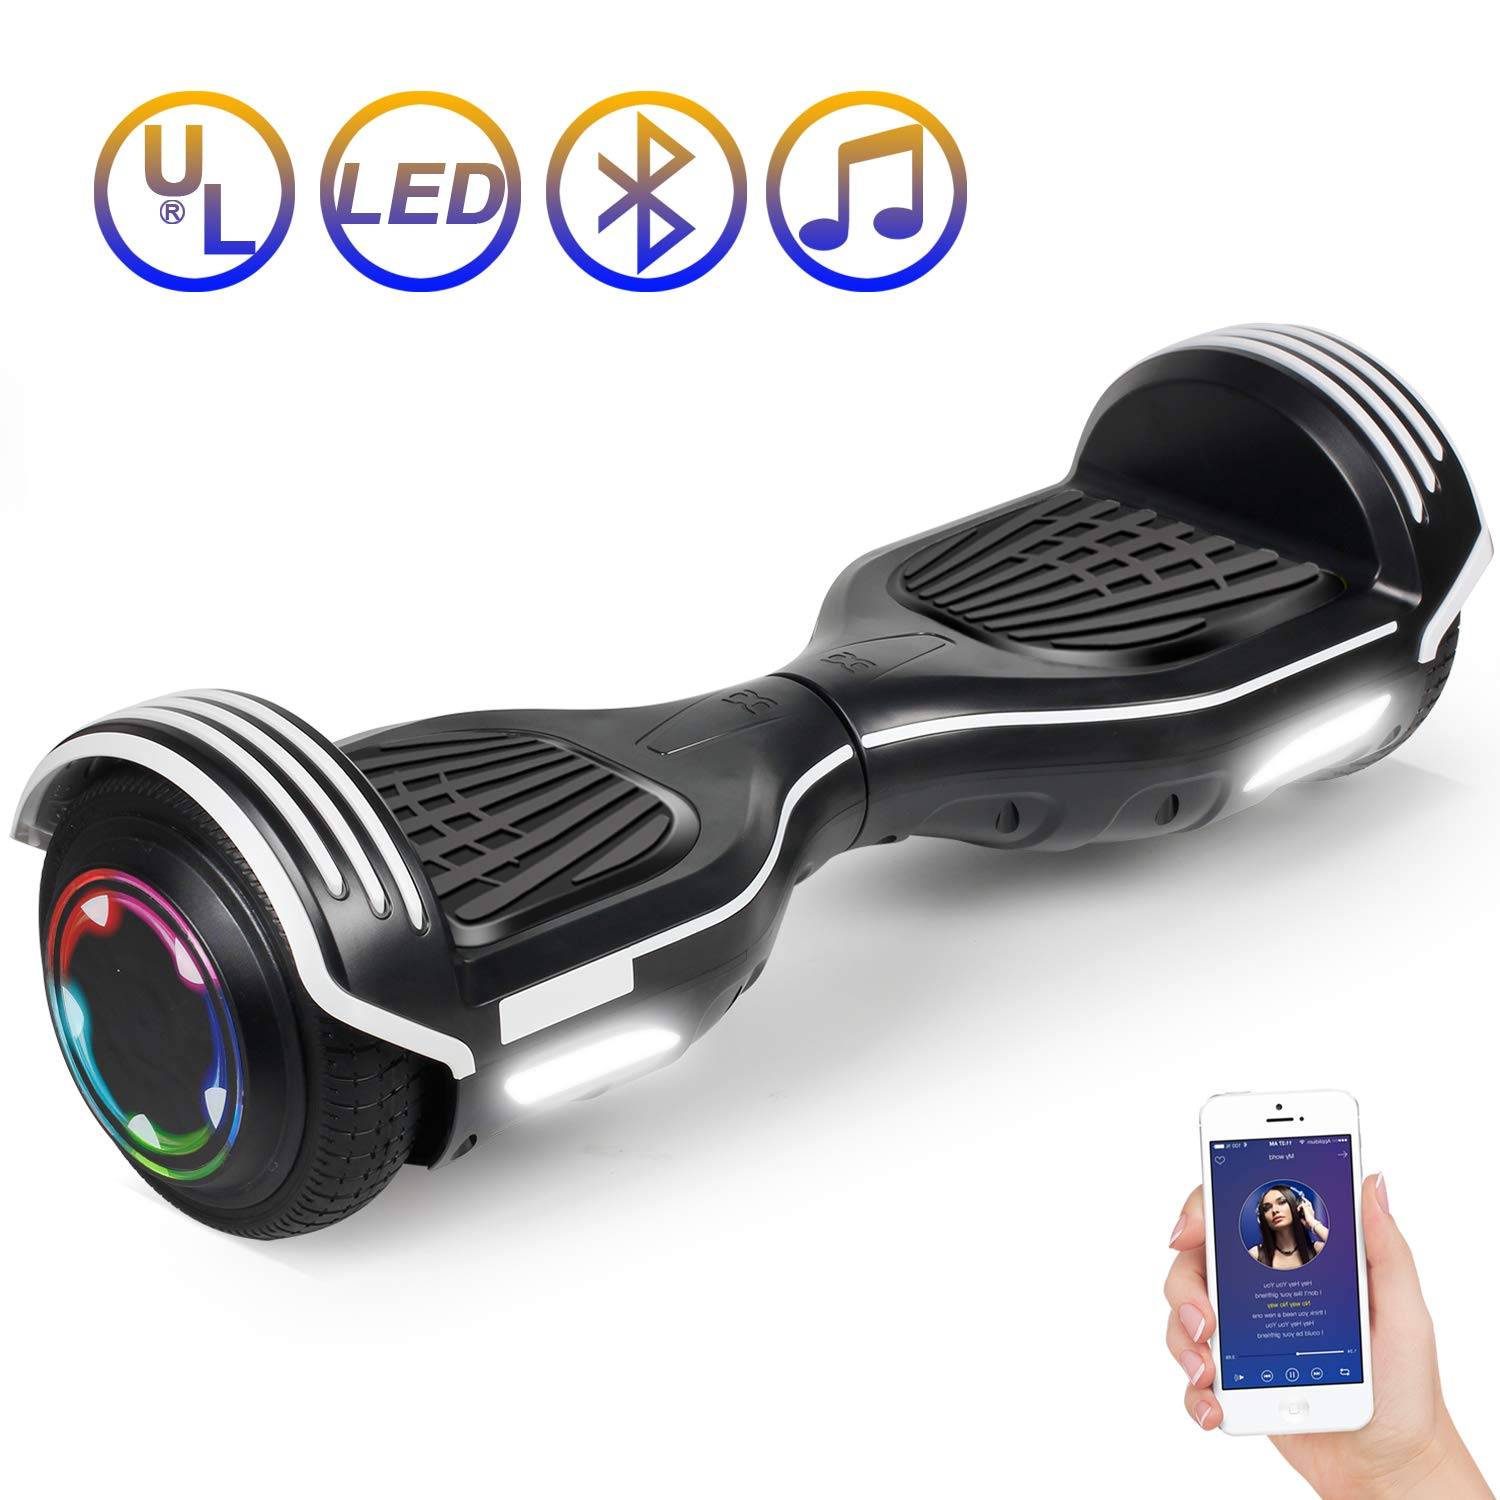 SISIGAD Hoverboard Self Balancing Scooter 6.5'' Two-Wheel Self Balancing Hoverboard with Bluetooth Speaker Electric Scooter for Adult Kids Gift UL 2272 Certified 138A Series - Black by SISIGAD